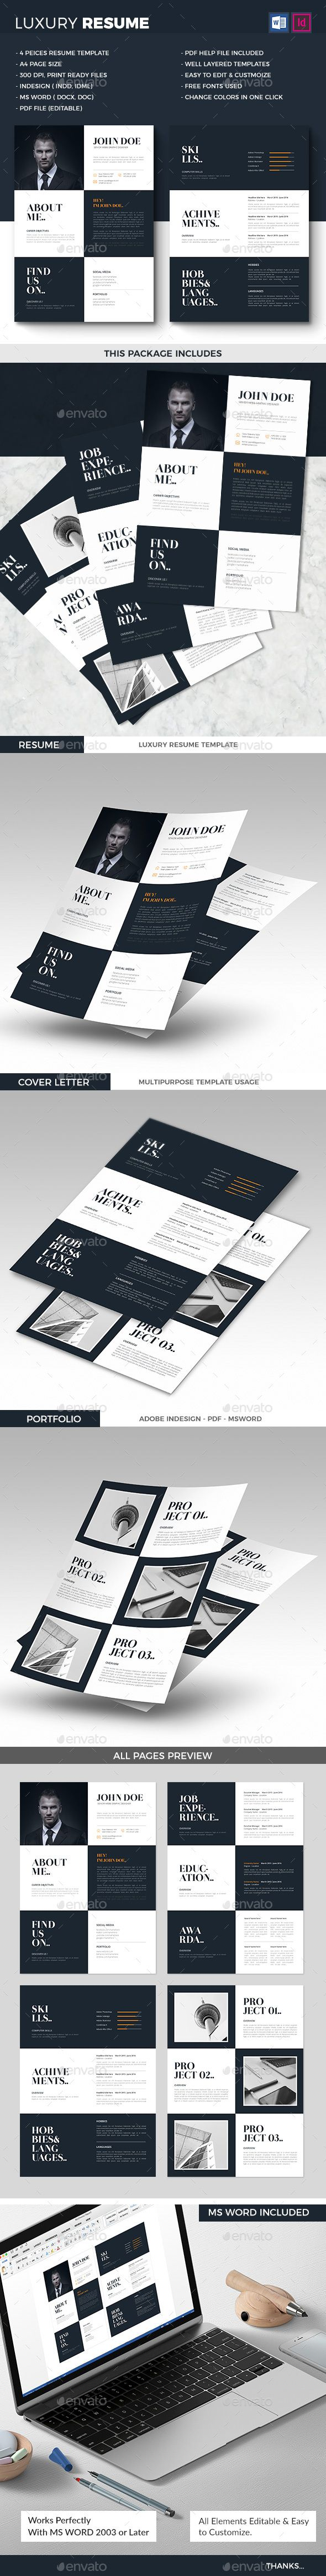 Luxury Resume Create your Resume easily with this professional ...